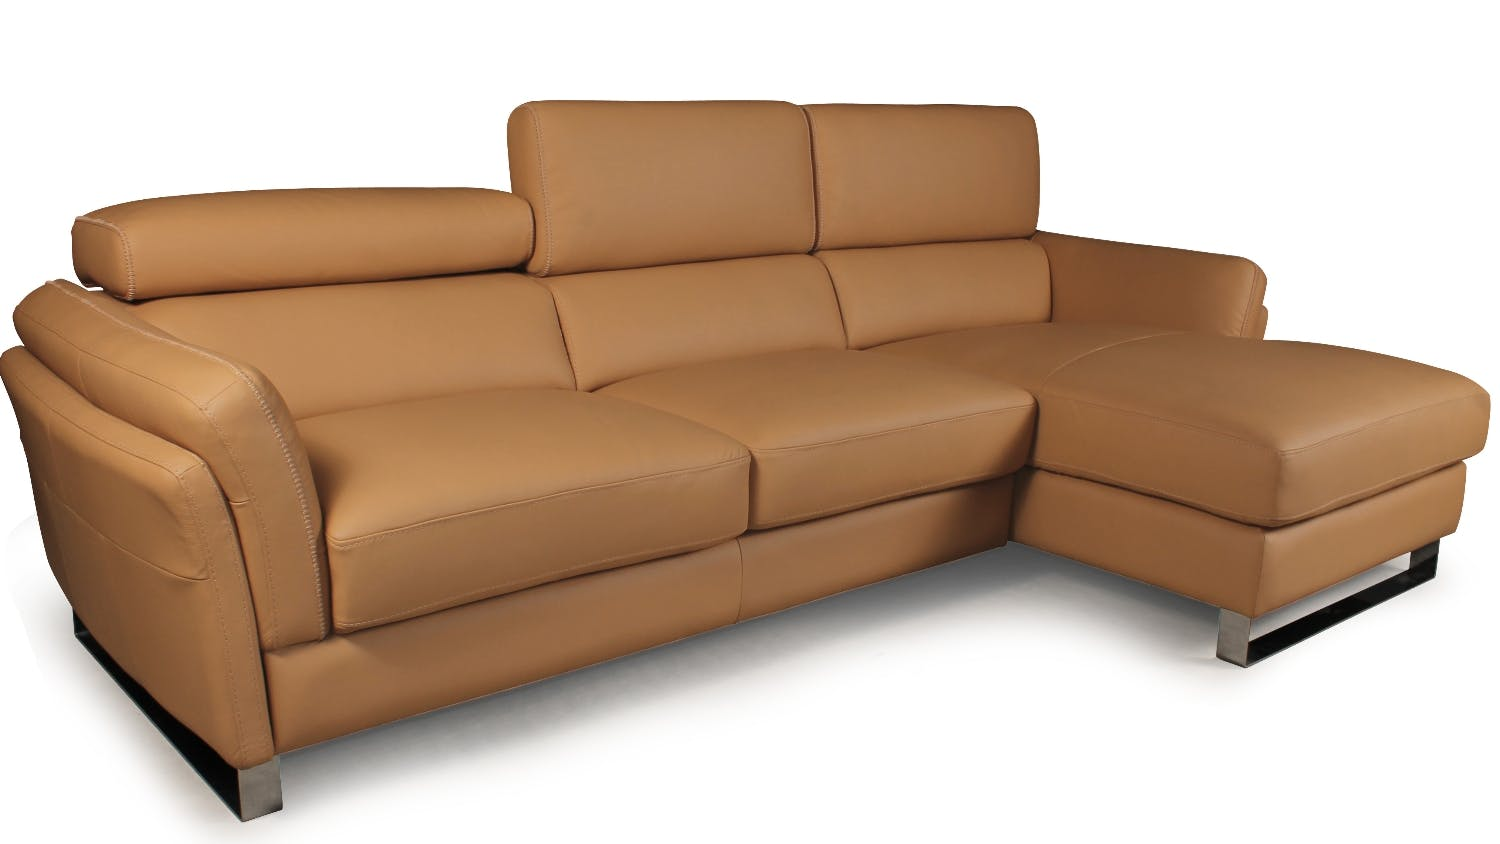 Harper 3 seater sofa with chaise lounge harvey norman for 3 seater chaise lounge